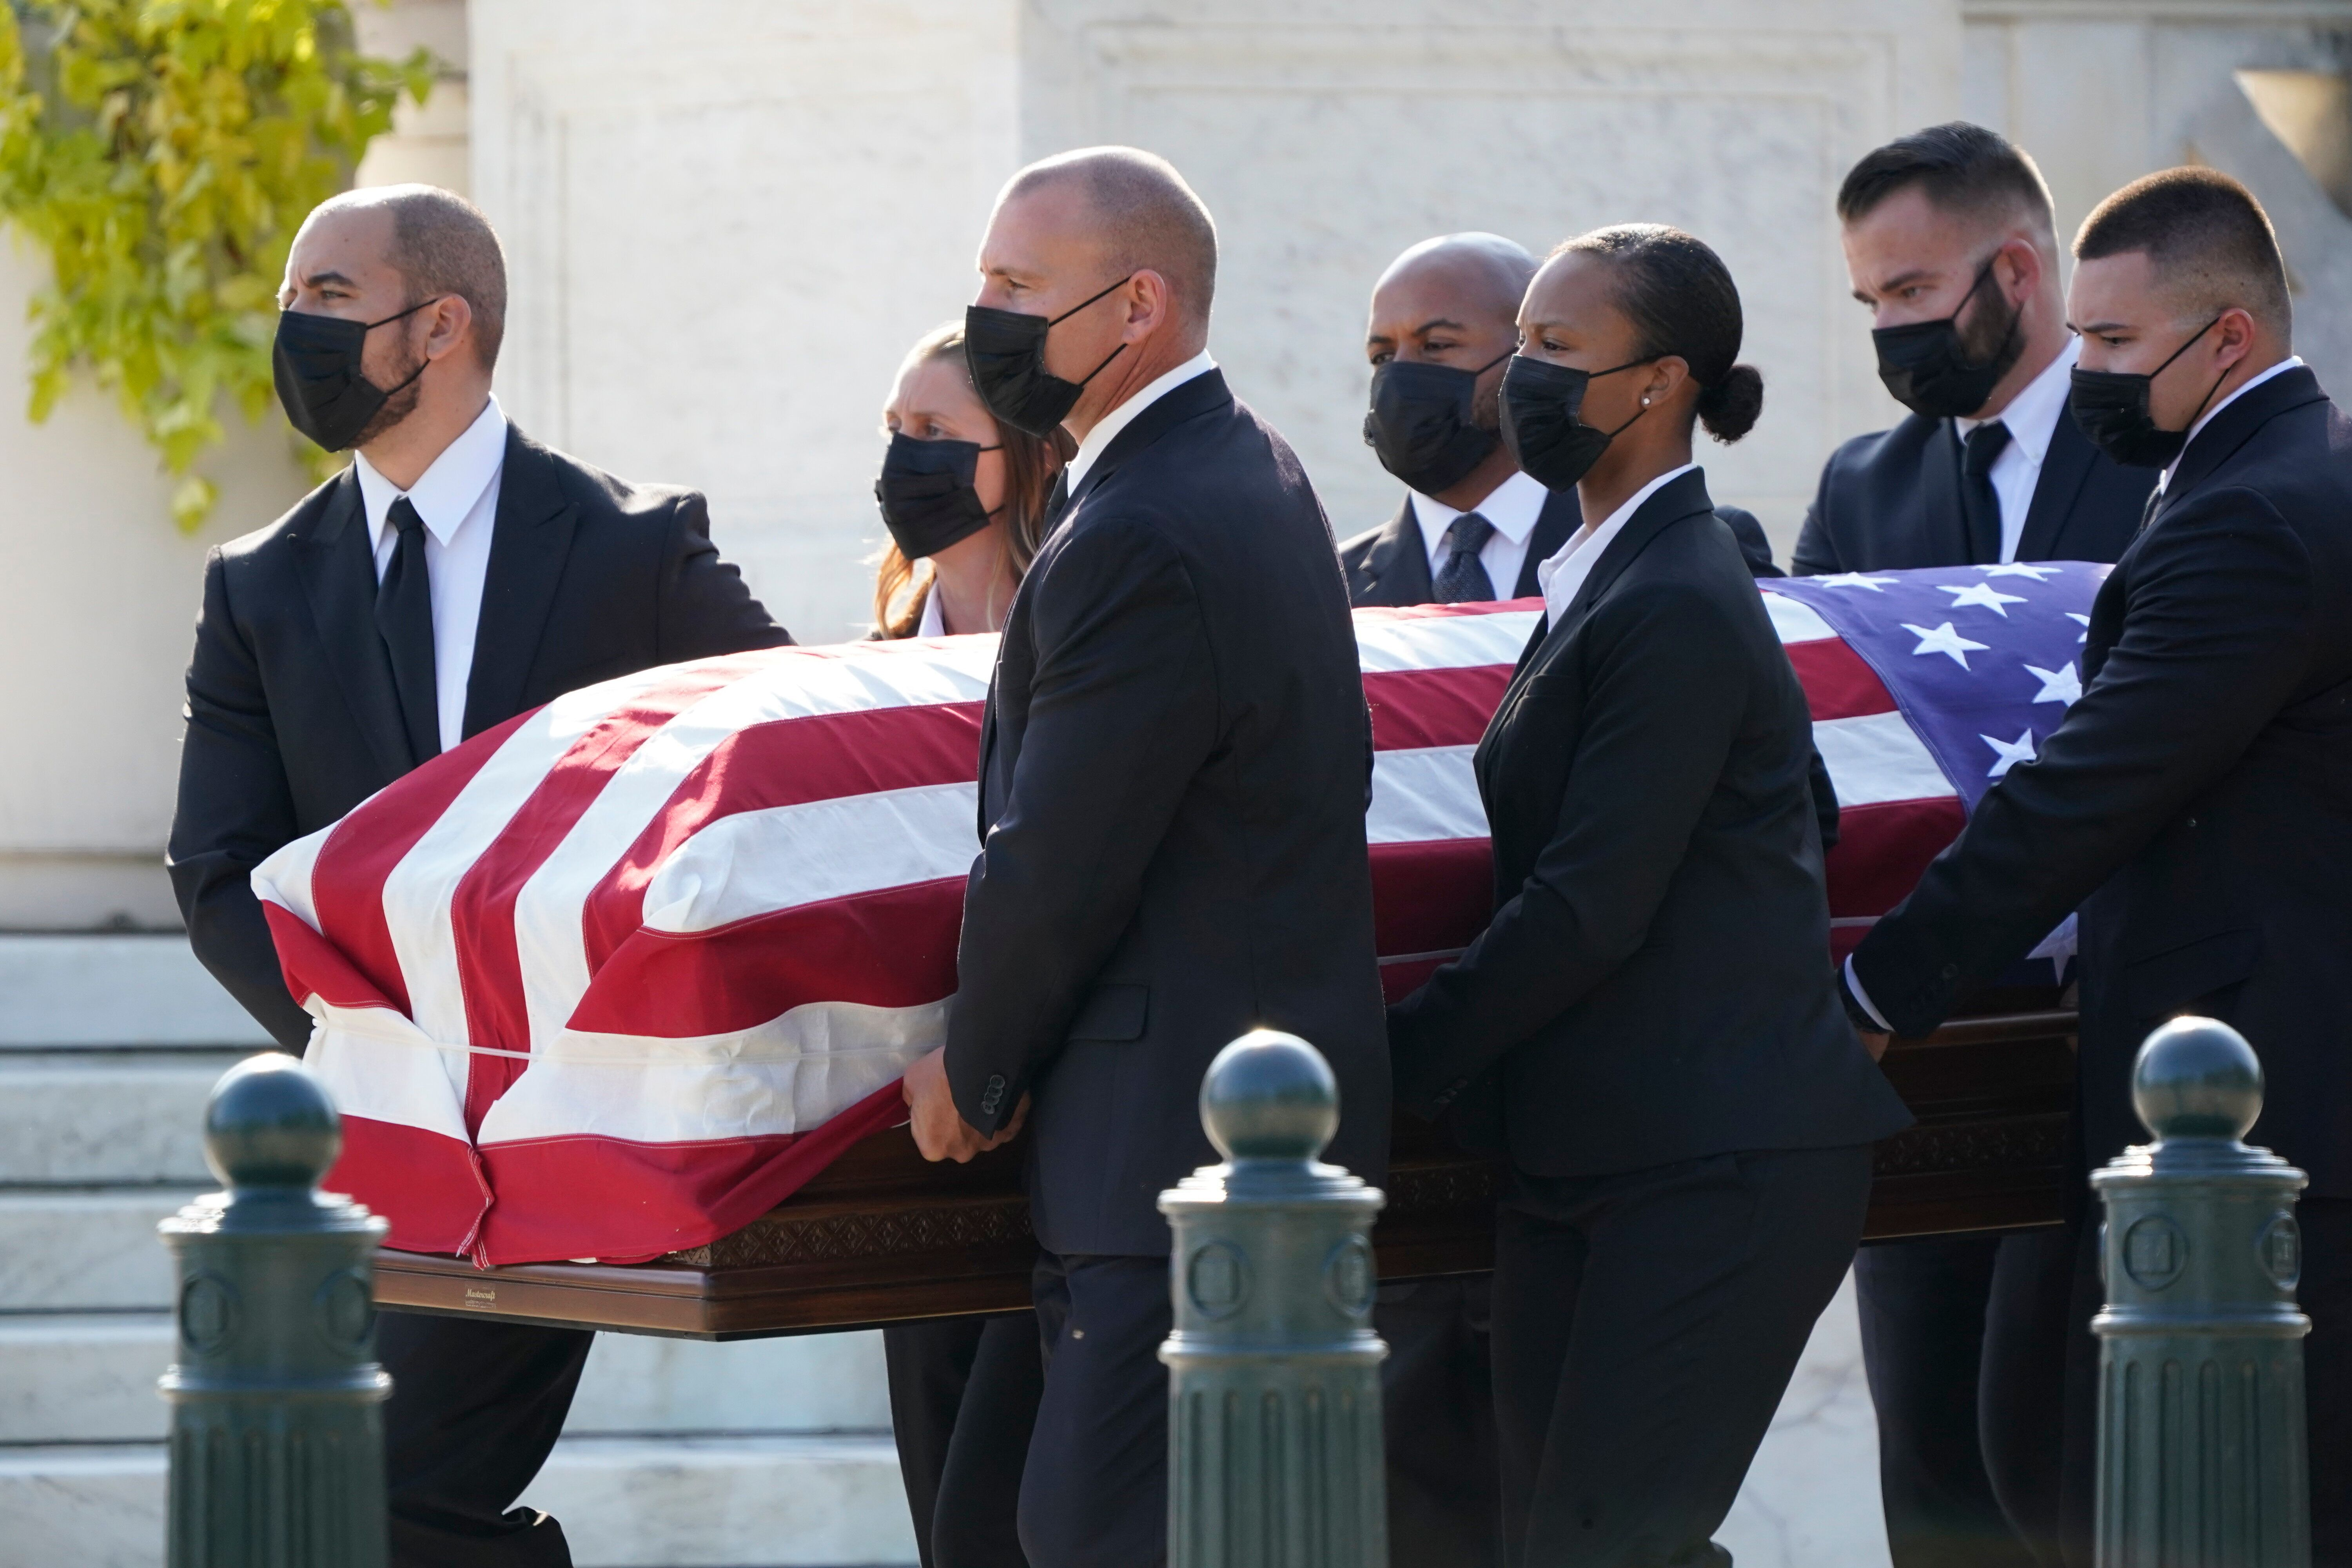 The flag-draped casket of Justice Ruth Bader Ginsburg arrives at the Supreme Court in Washington, Wednesday, Sept. 23, 2020.